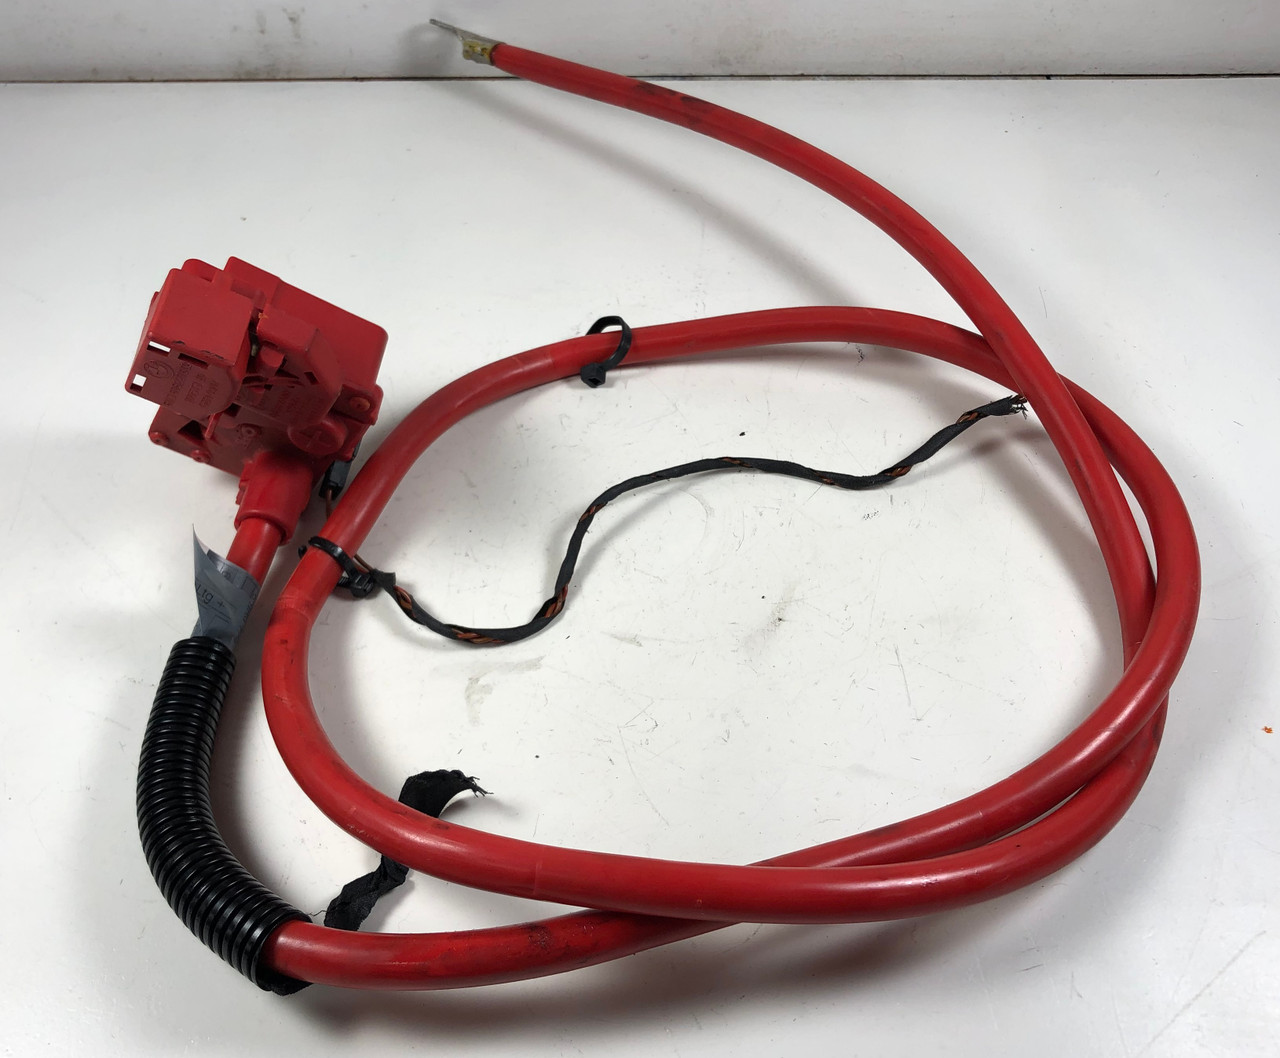 08 09 BMW E60 Trunk Positive Battery Cable SRS 6989780